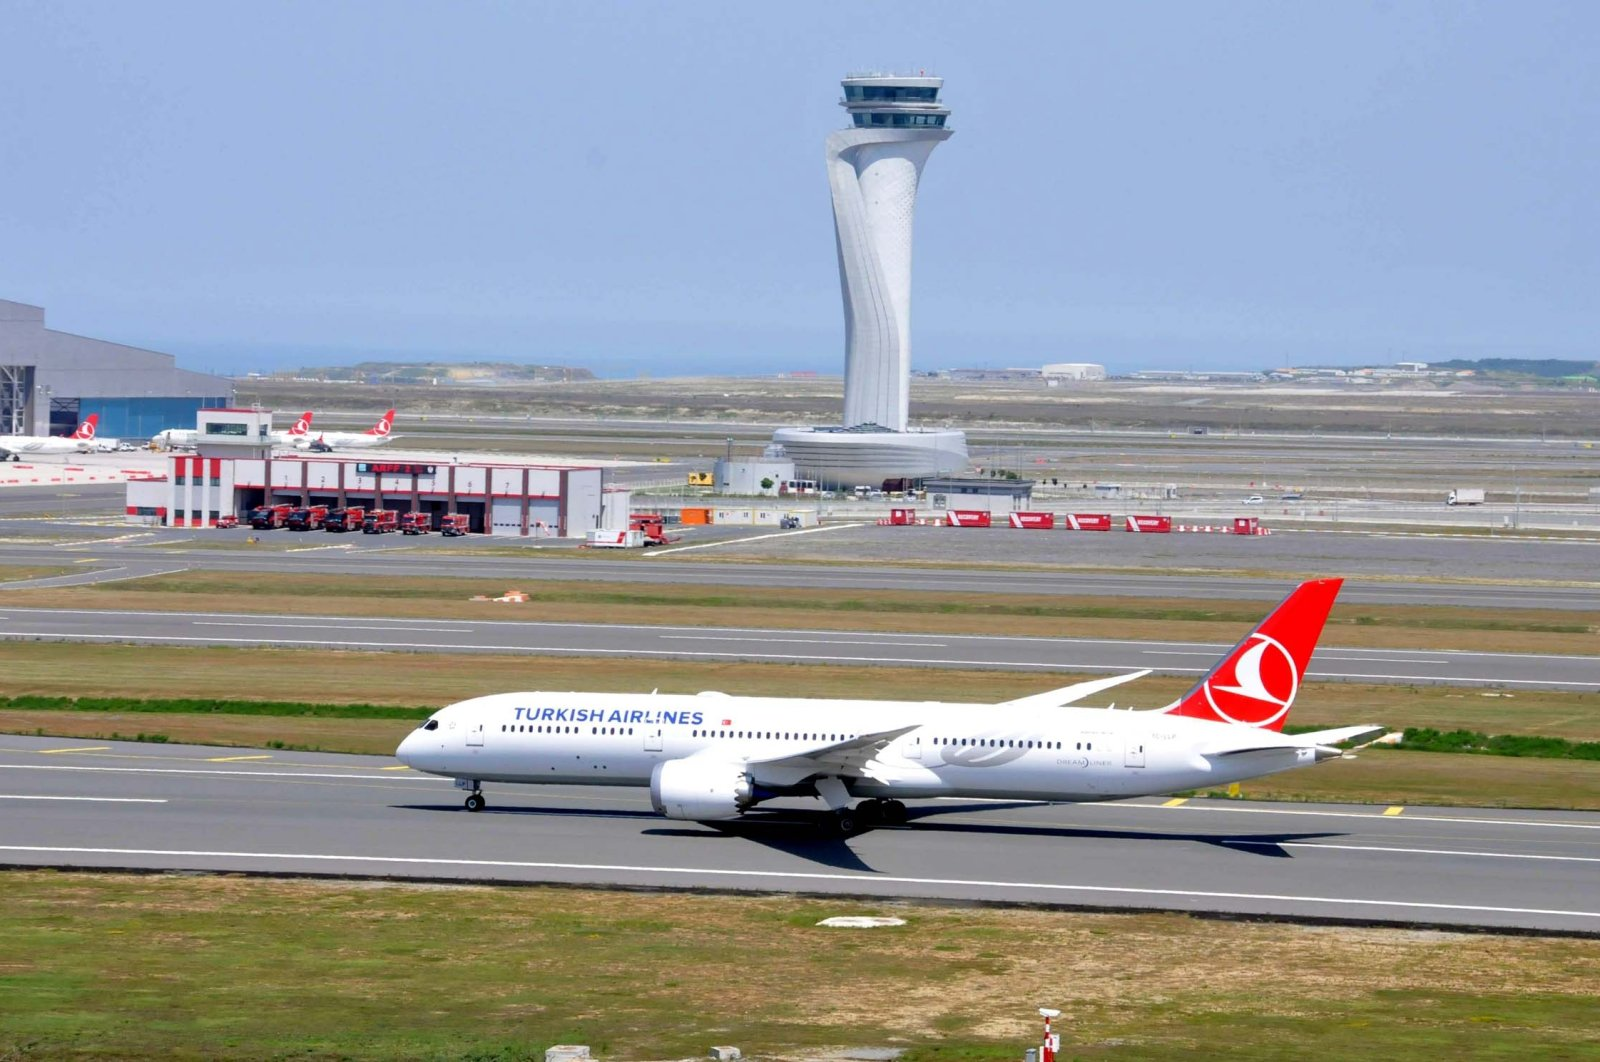 A Turkish Airlines aircraft prepares to take off from Istanbul Airport, Istanbul, Turkey, June 25, 2021. (DHA Photo)